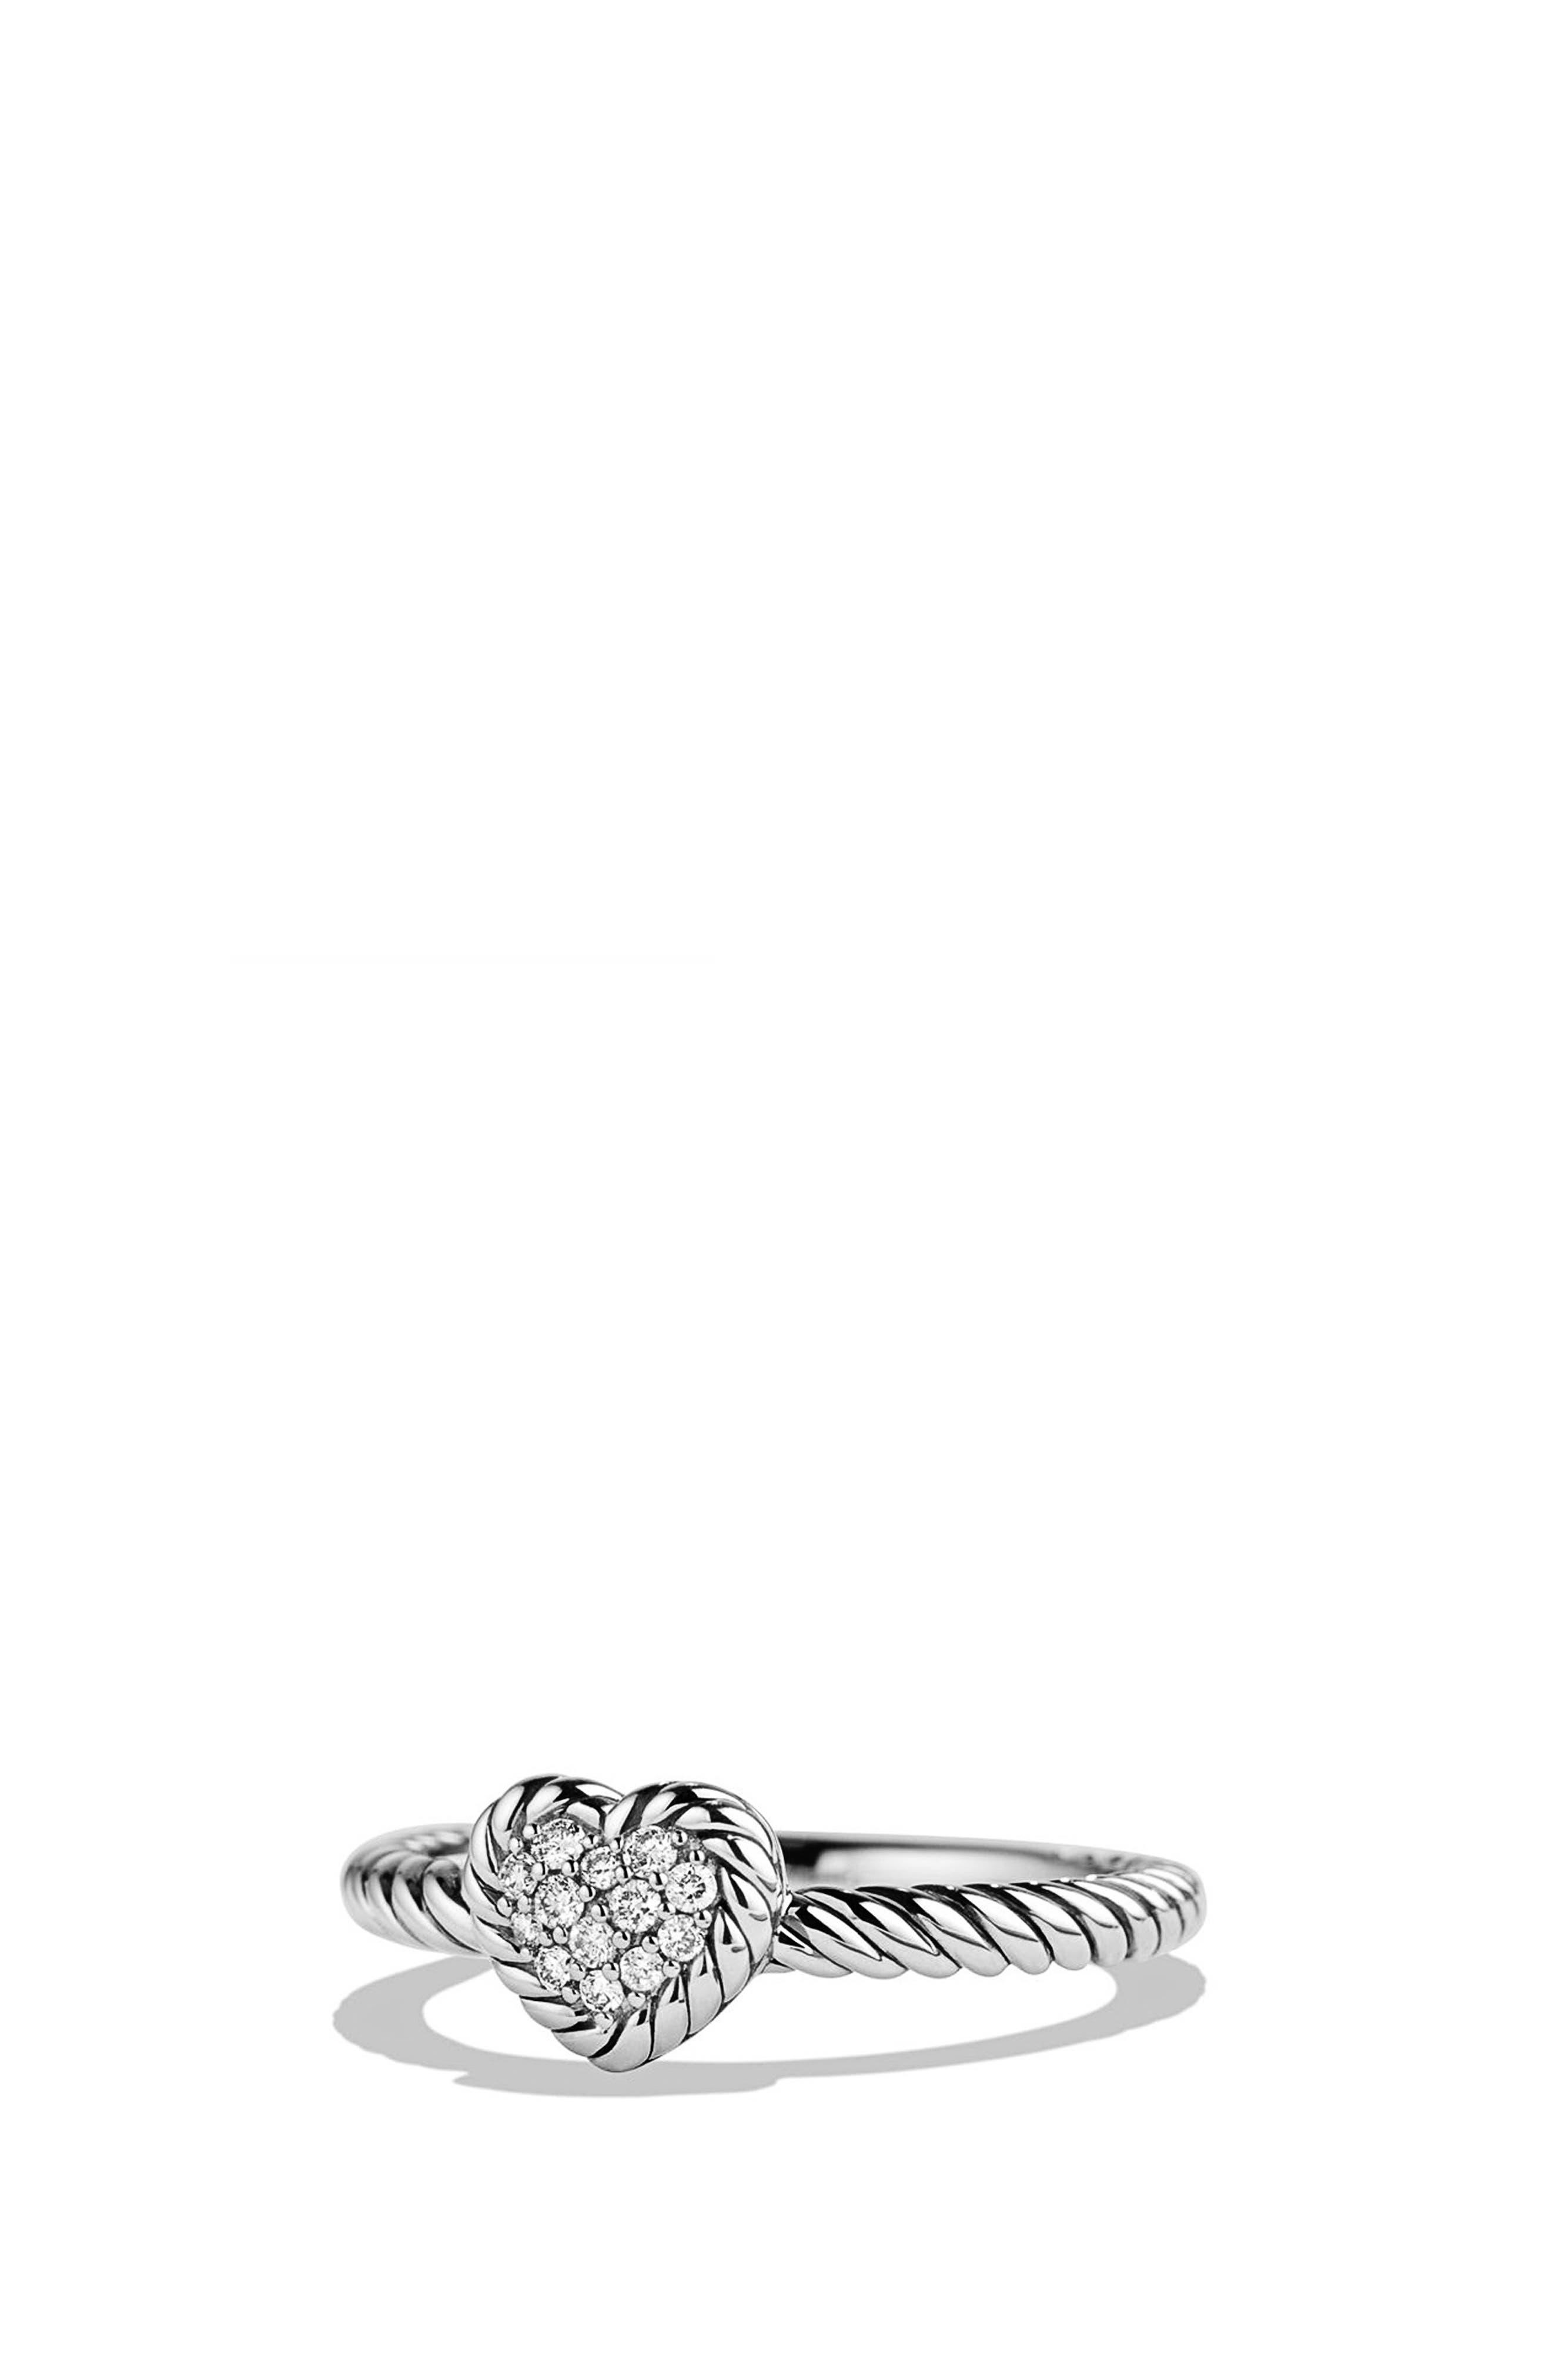 'Châtelaine' Heart Ring with Diamonds,                             Main thumbnail 1, color,                             SILVER